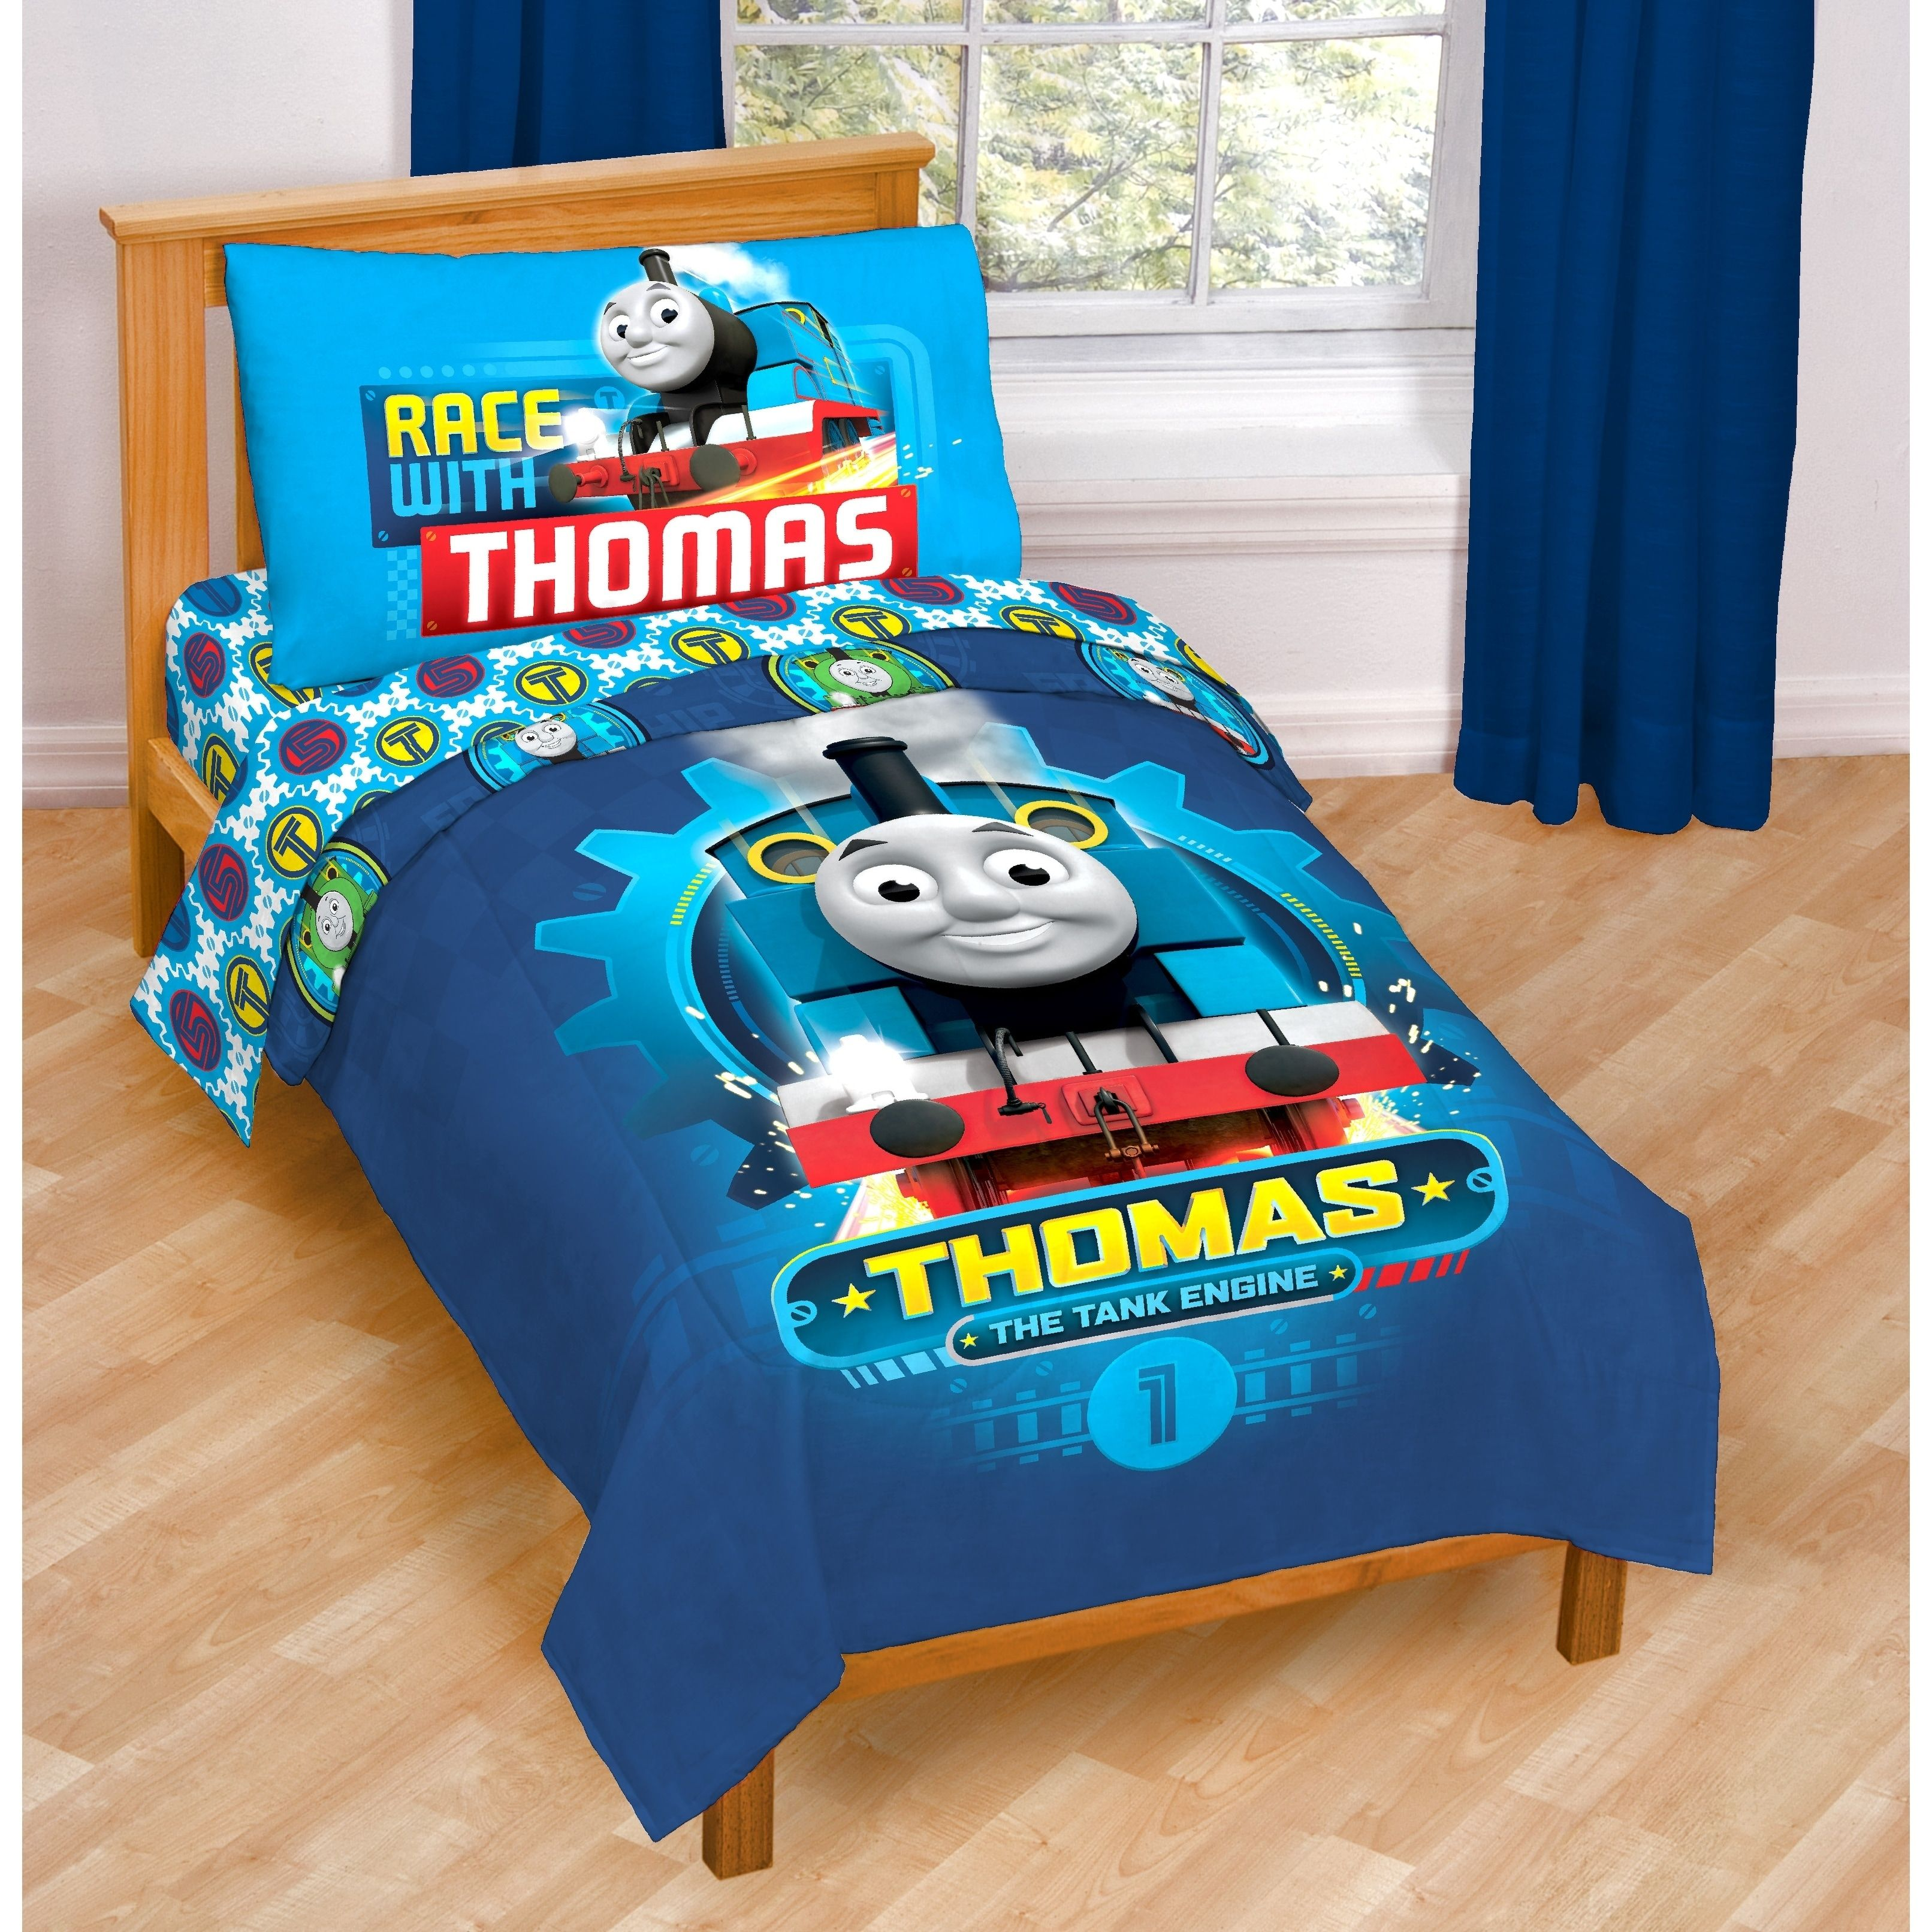 Thomas The Tank Engine Race Friends Toddler 4 Piece Bed In A Bag